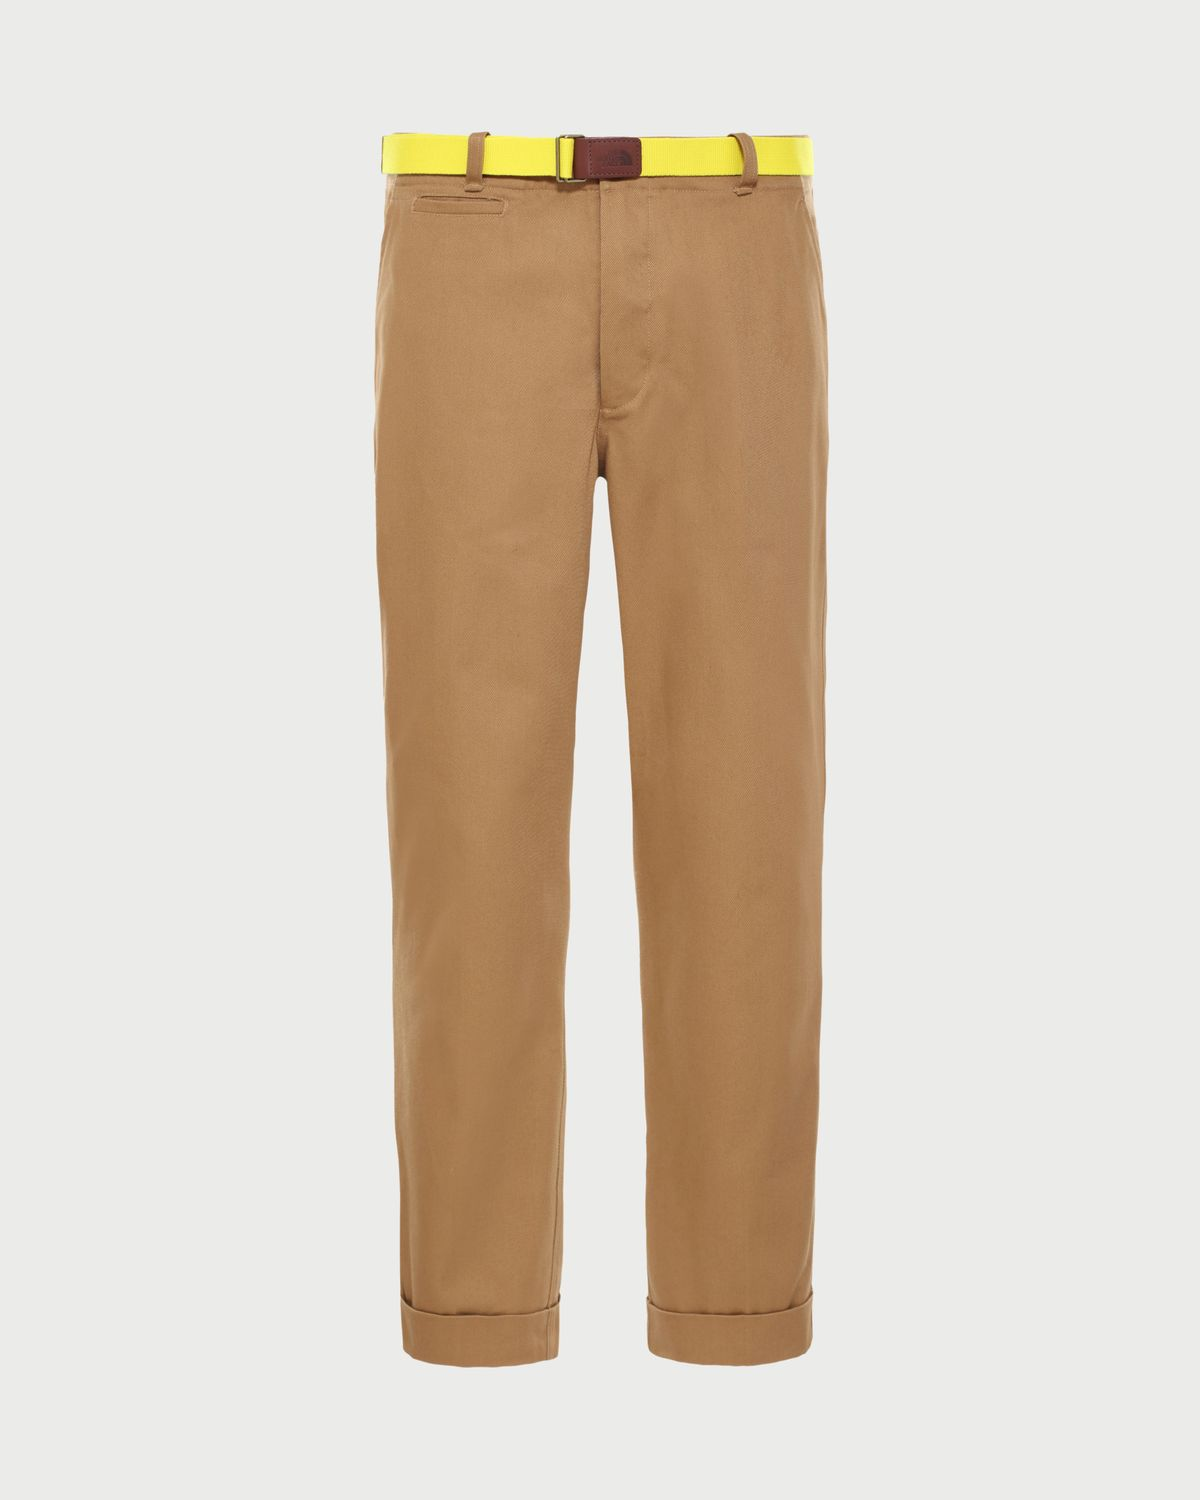 The North Face Brown Label — Twill Trouser Utility Brown Men - Image 1